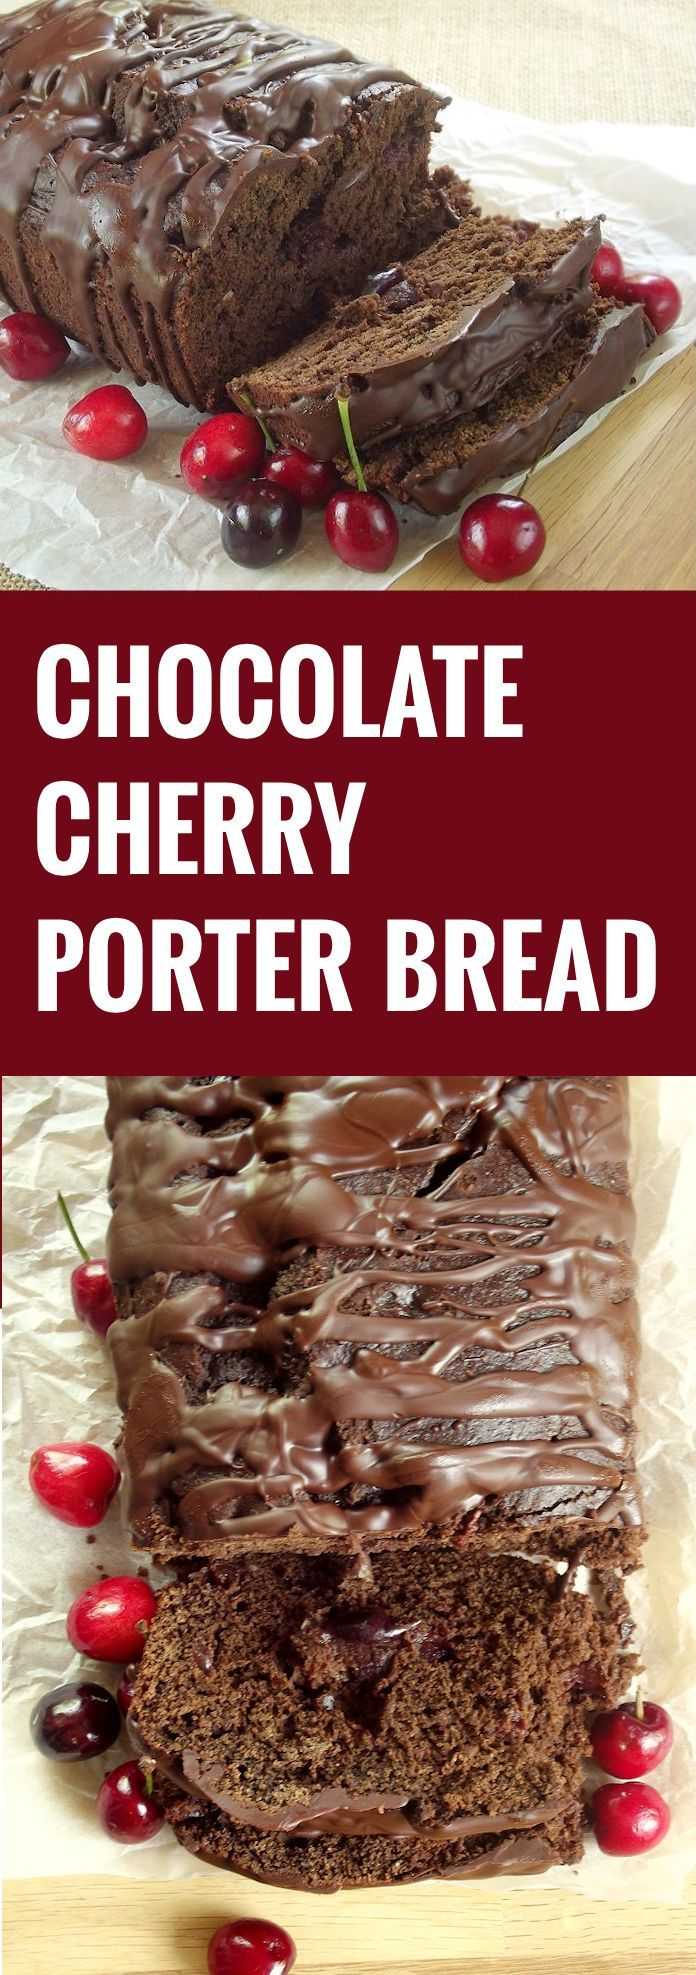 This chocolate cherry porter bread is a rich, satisfying dessert infused with the richness of chocolate and porter and bursting with ripe summer cherries.